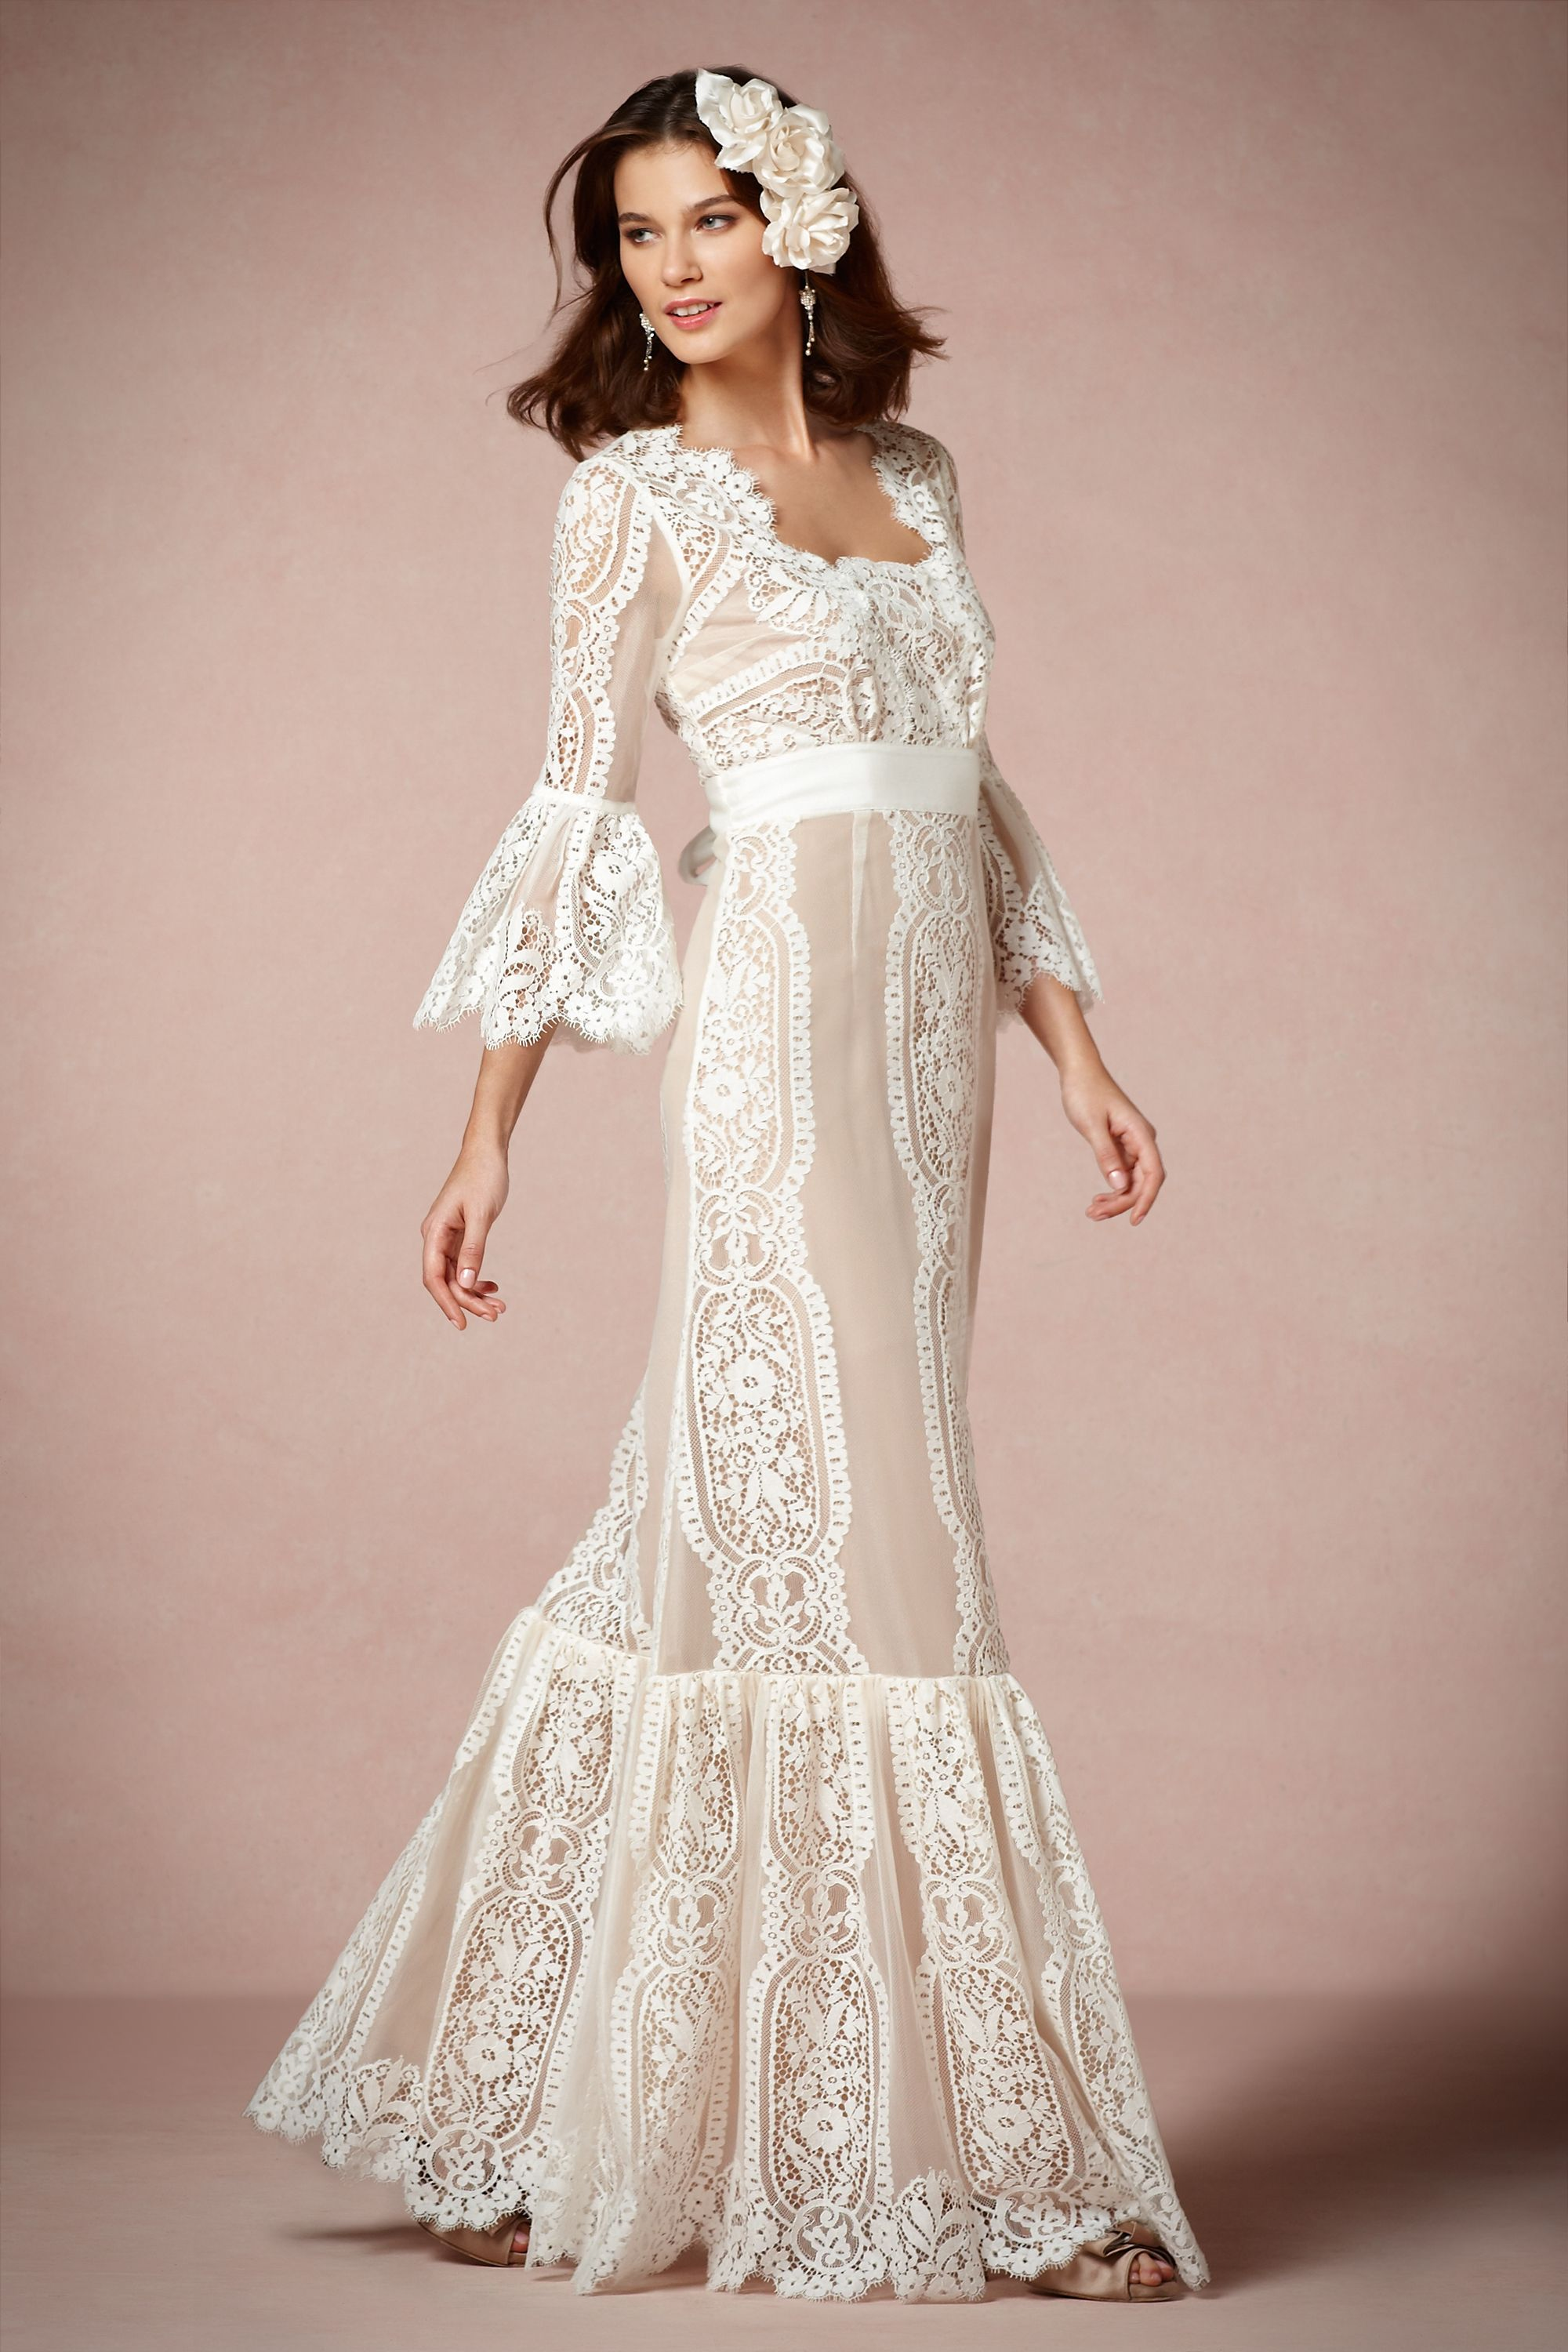 20 Unconventional Wedding Dresses for the Modern Bride ...